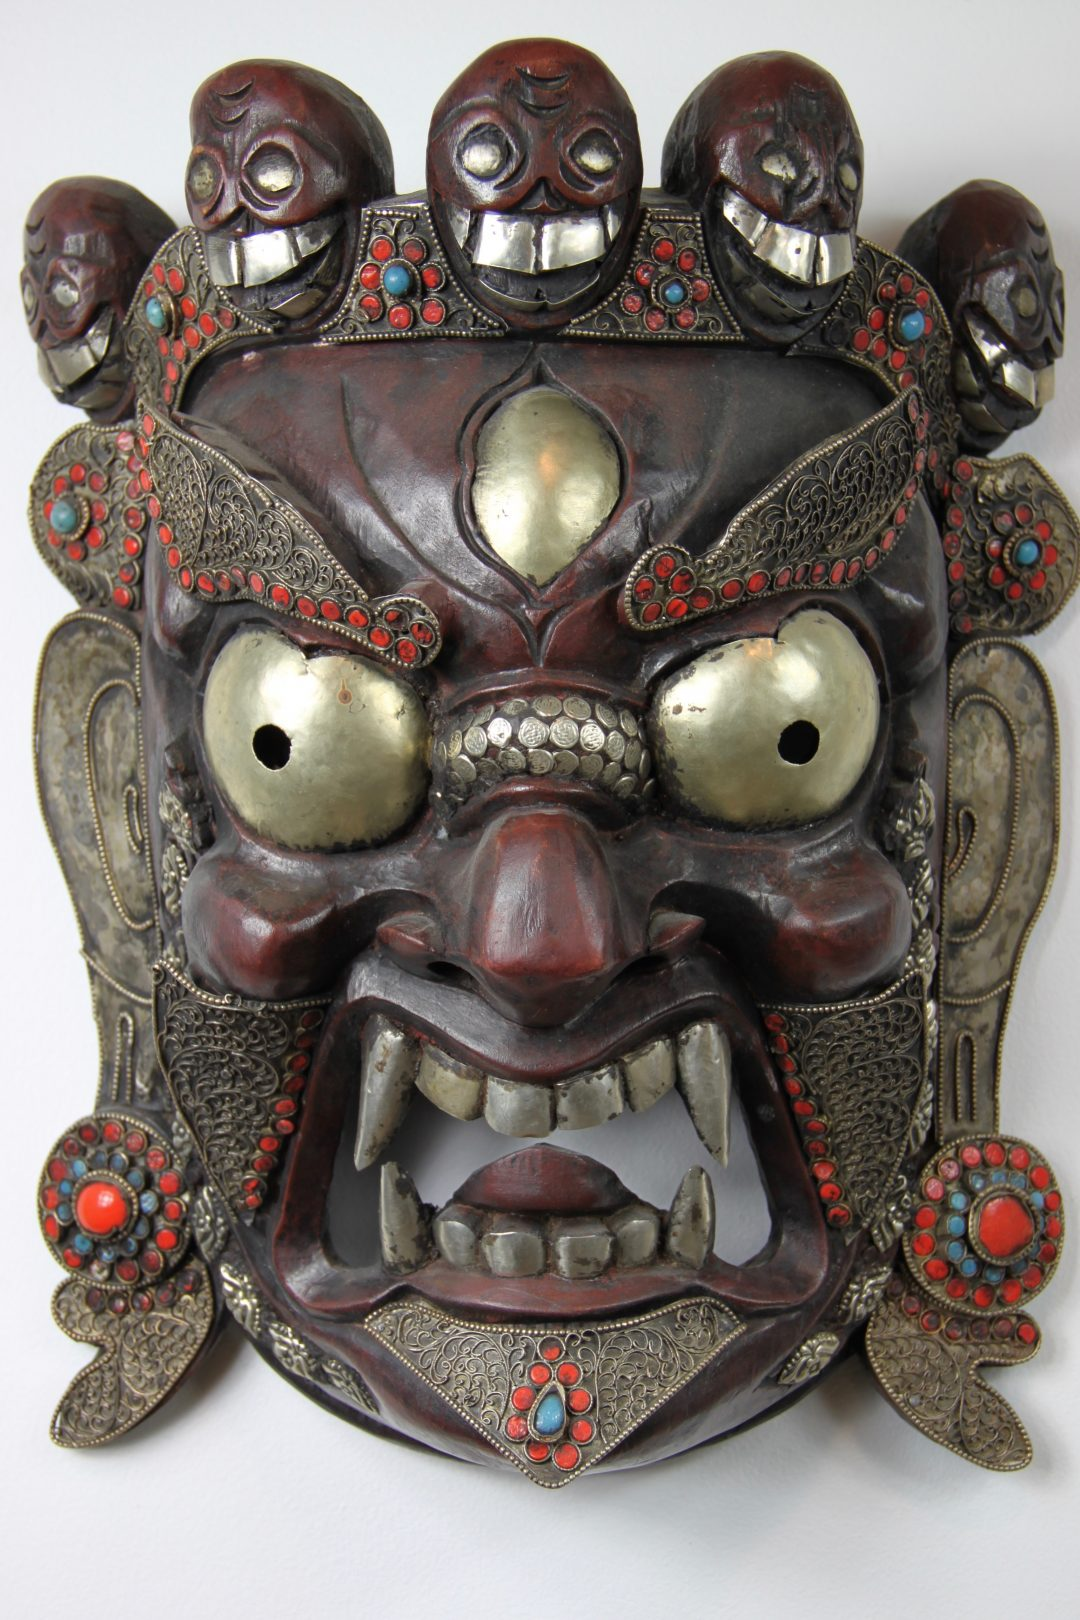 Big Bhairab Mask for Protection